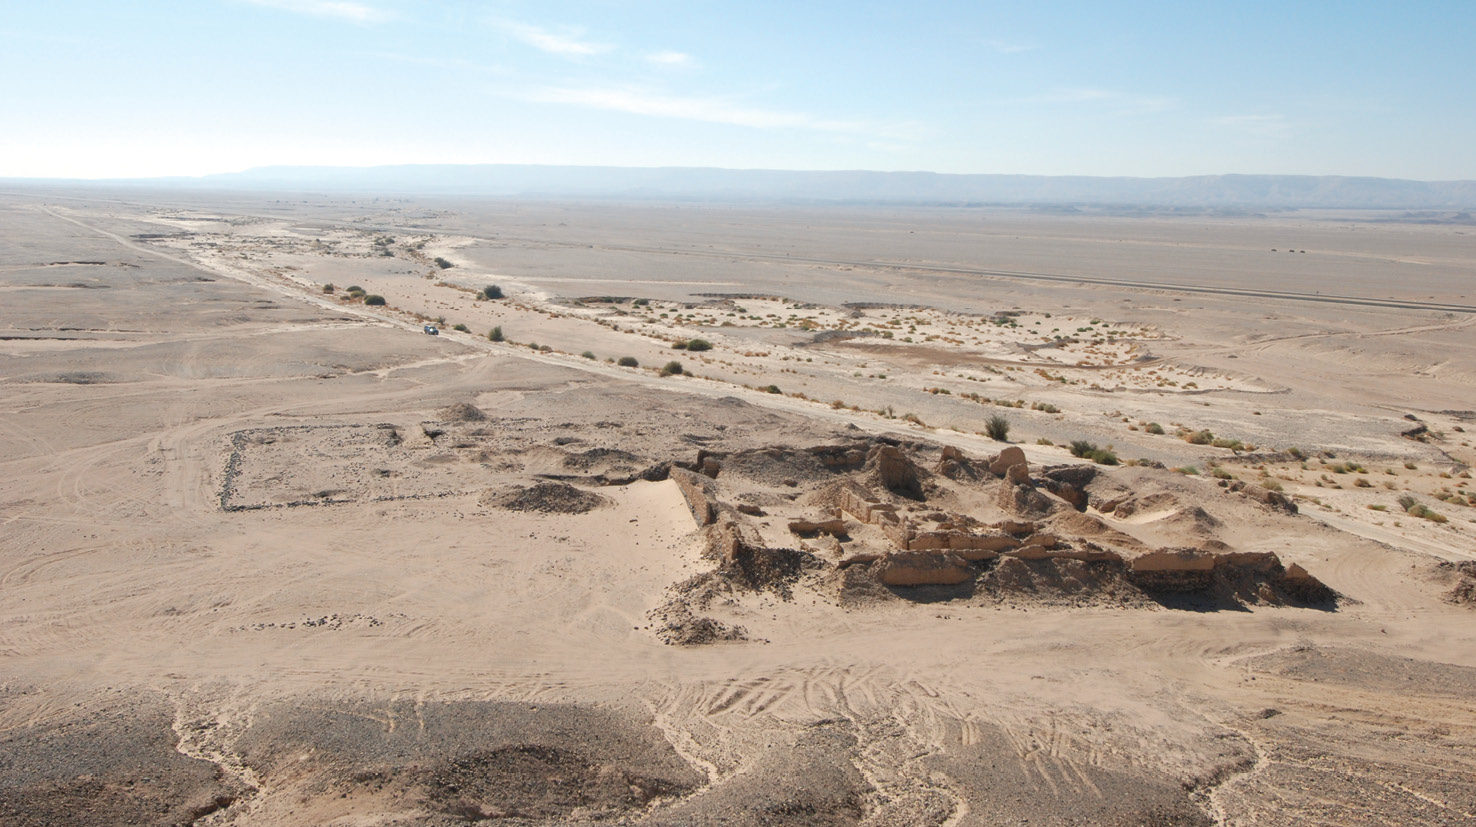 BELOW This view of the fortlet at Al-Heila in the Eastern Desert of Egypt emphasises how